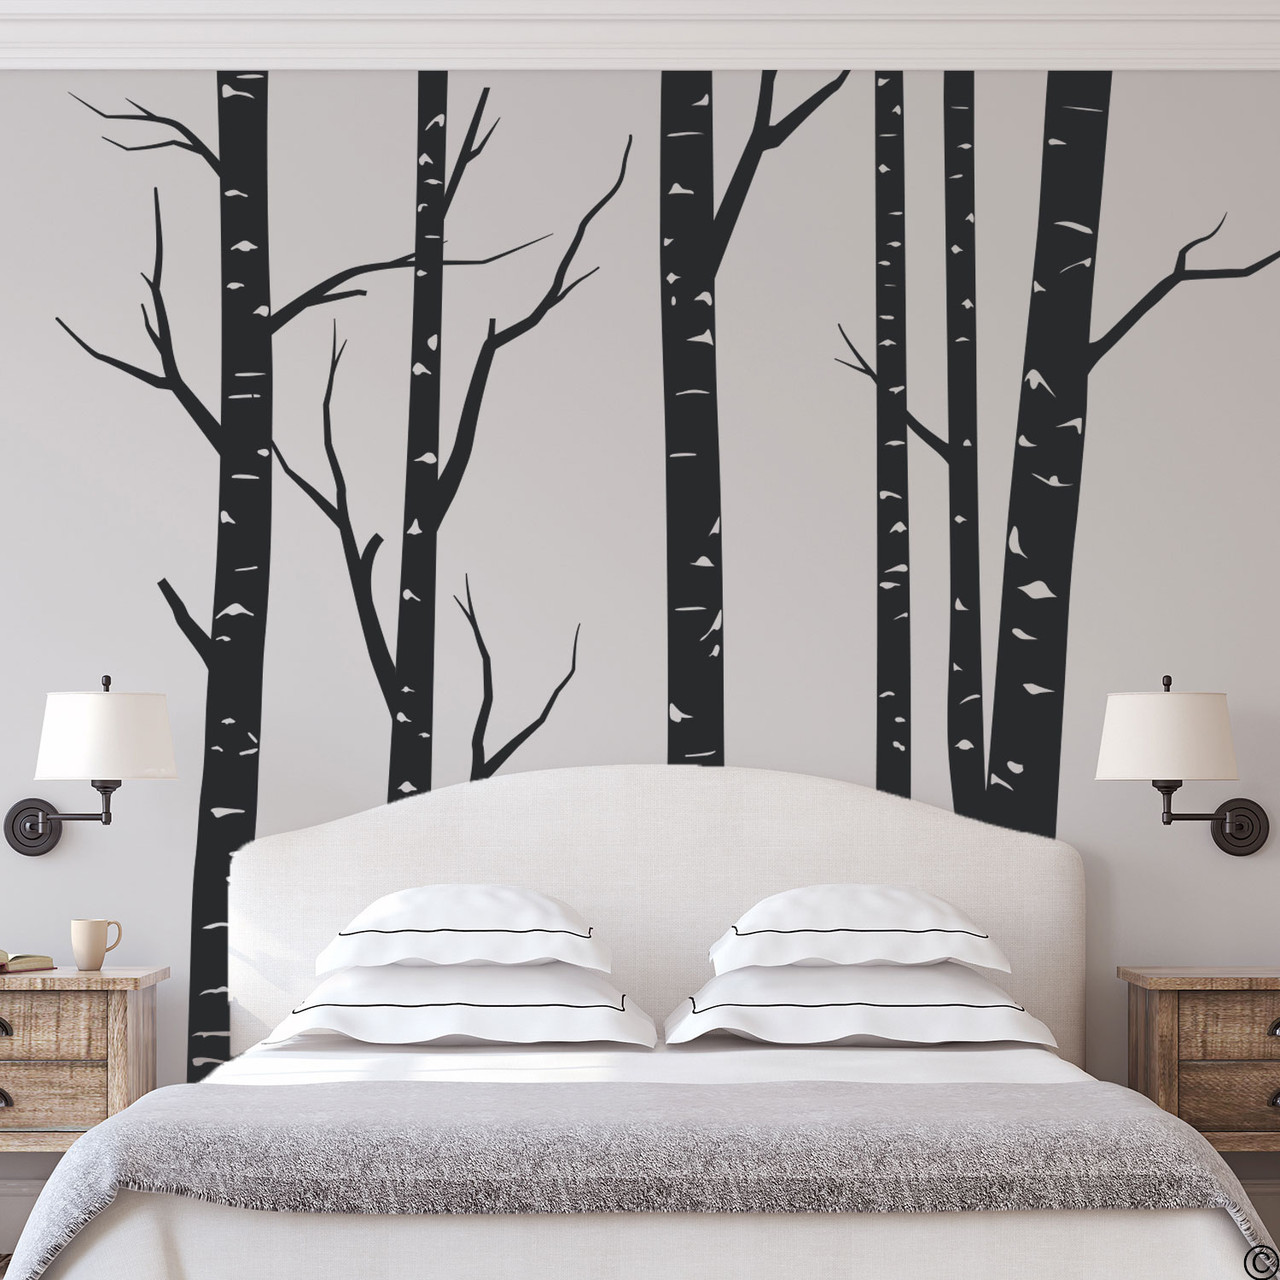 Aspen forest wall decal mural in black vinyl color.